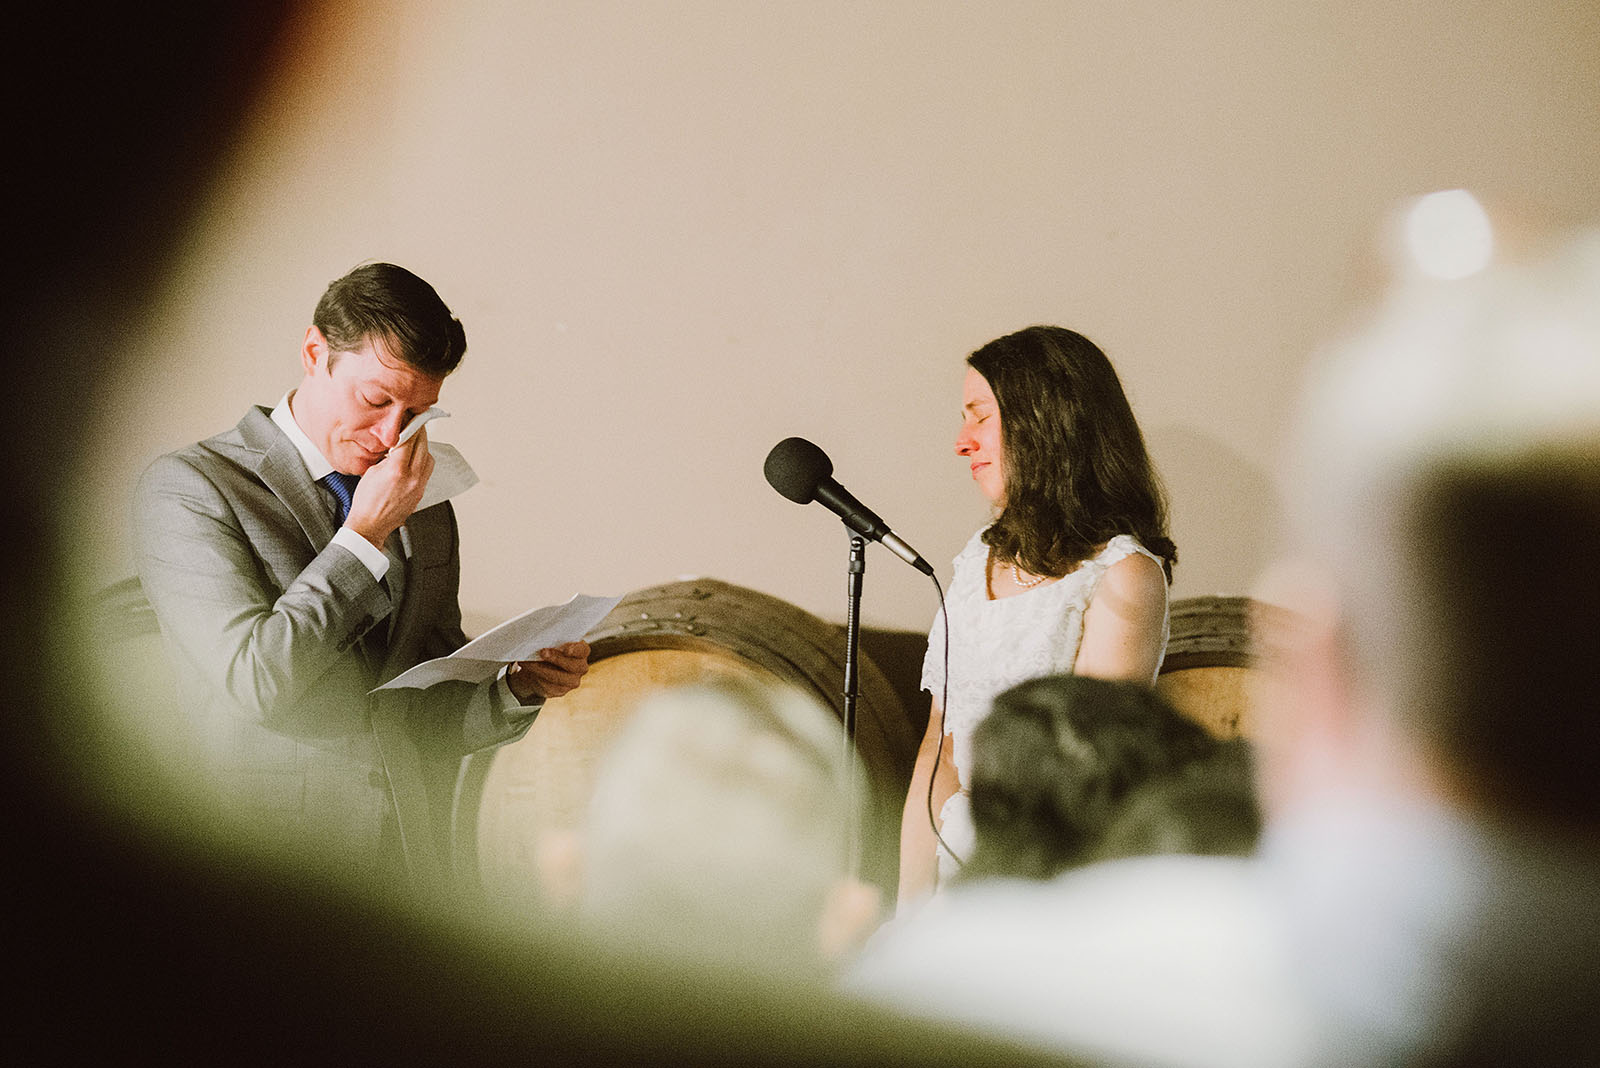 Groom crying during vows at an Intimate Restaurant Wedding in Portland, OR